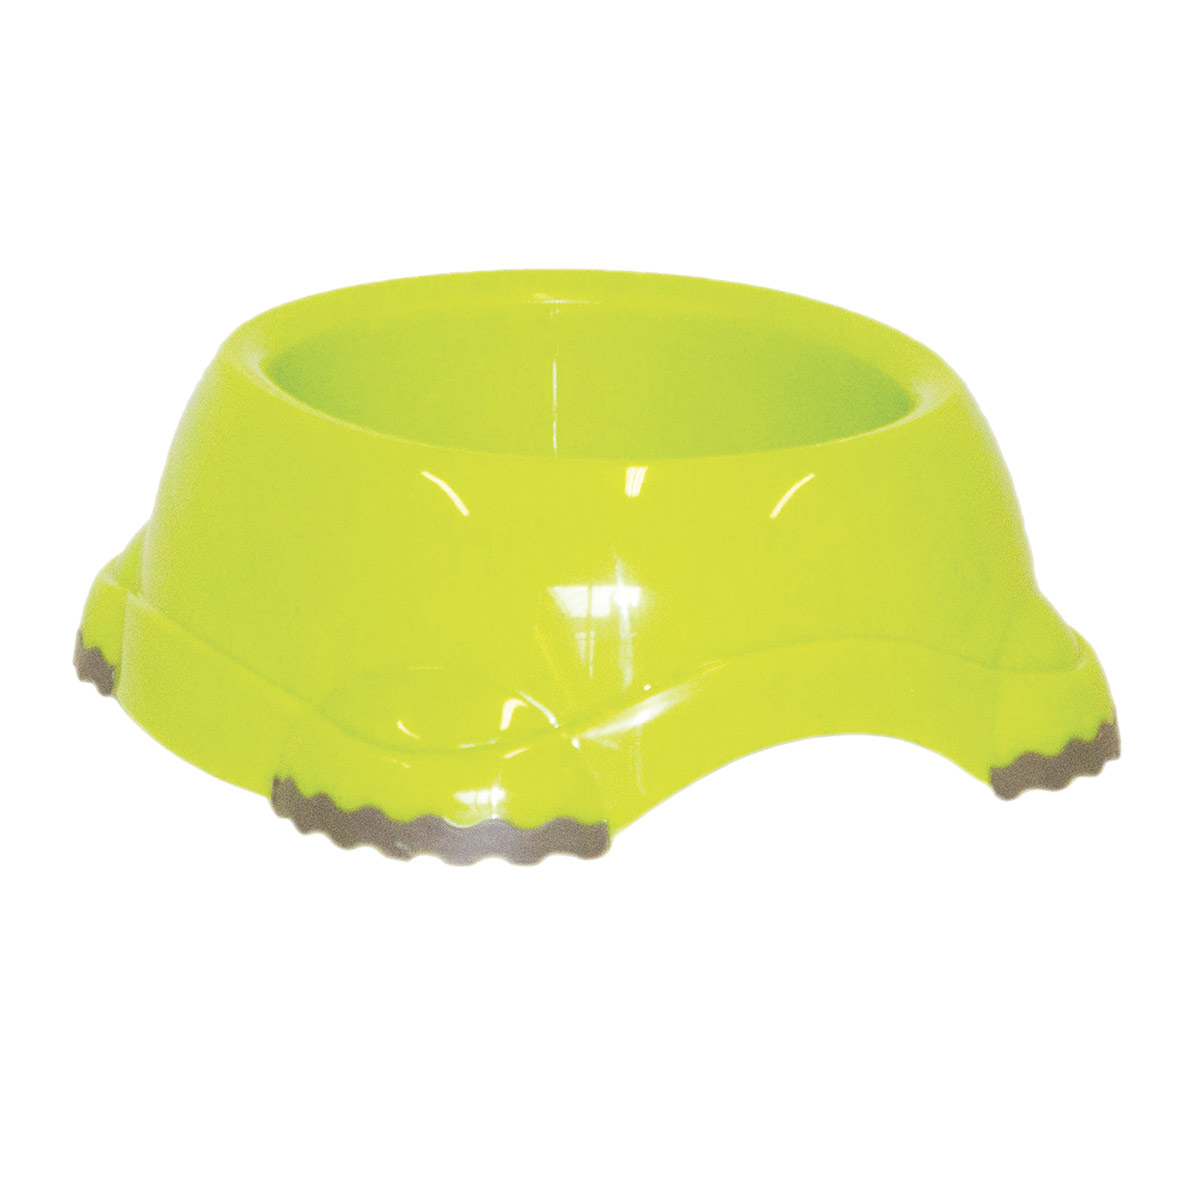 Fun Green Moderna Smarty Bowl Small Dog Bowl - No Skid